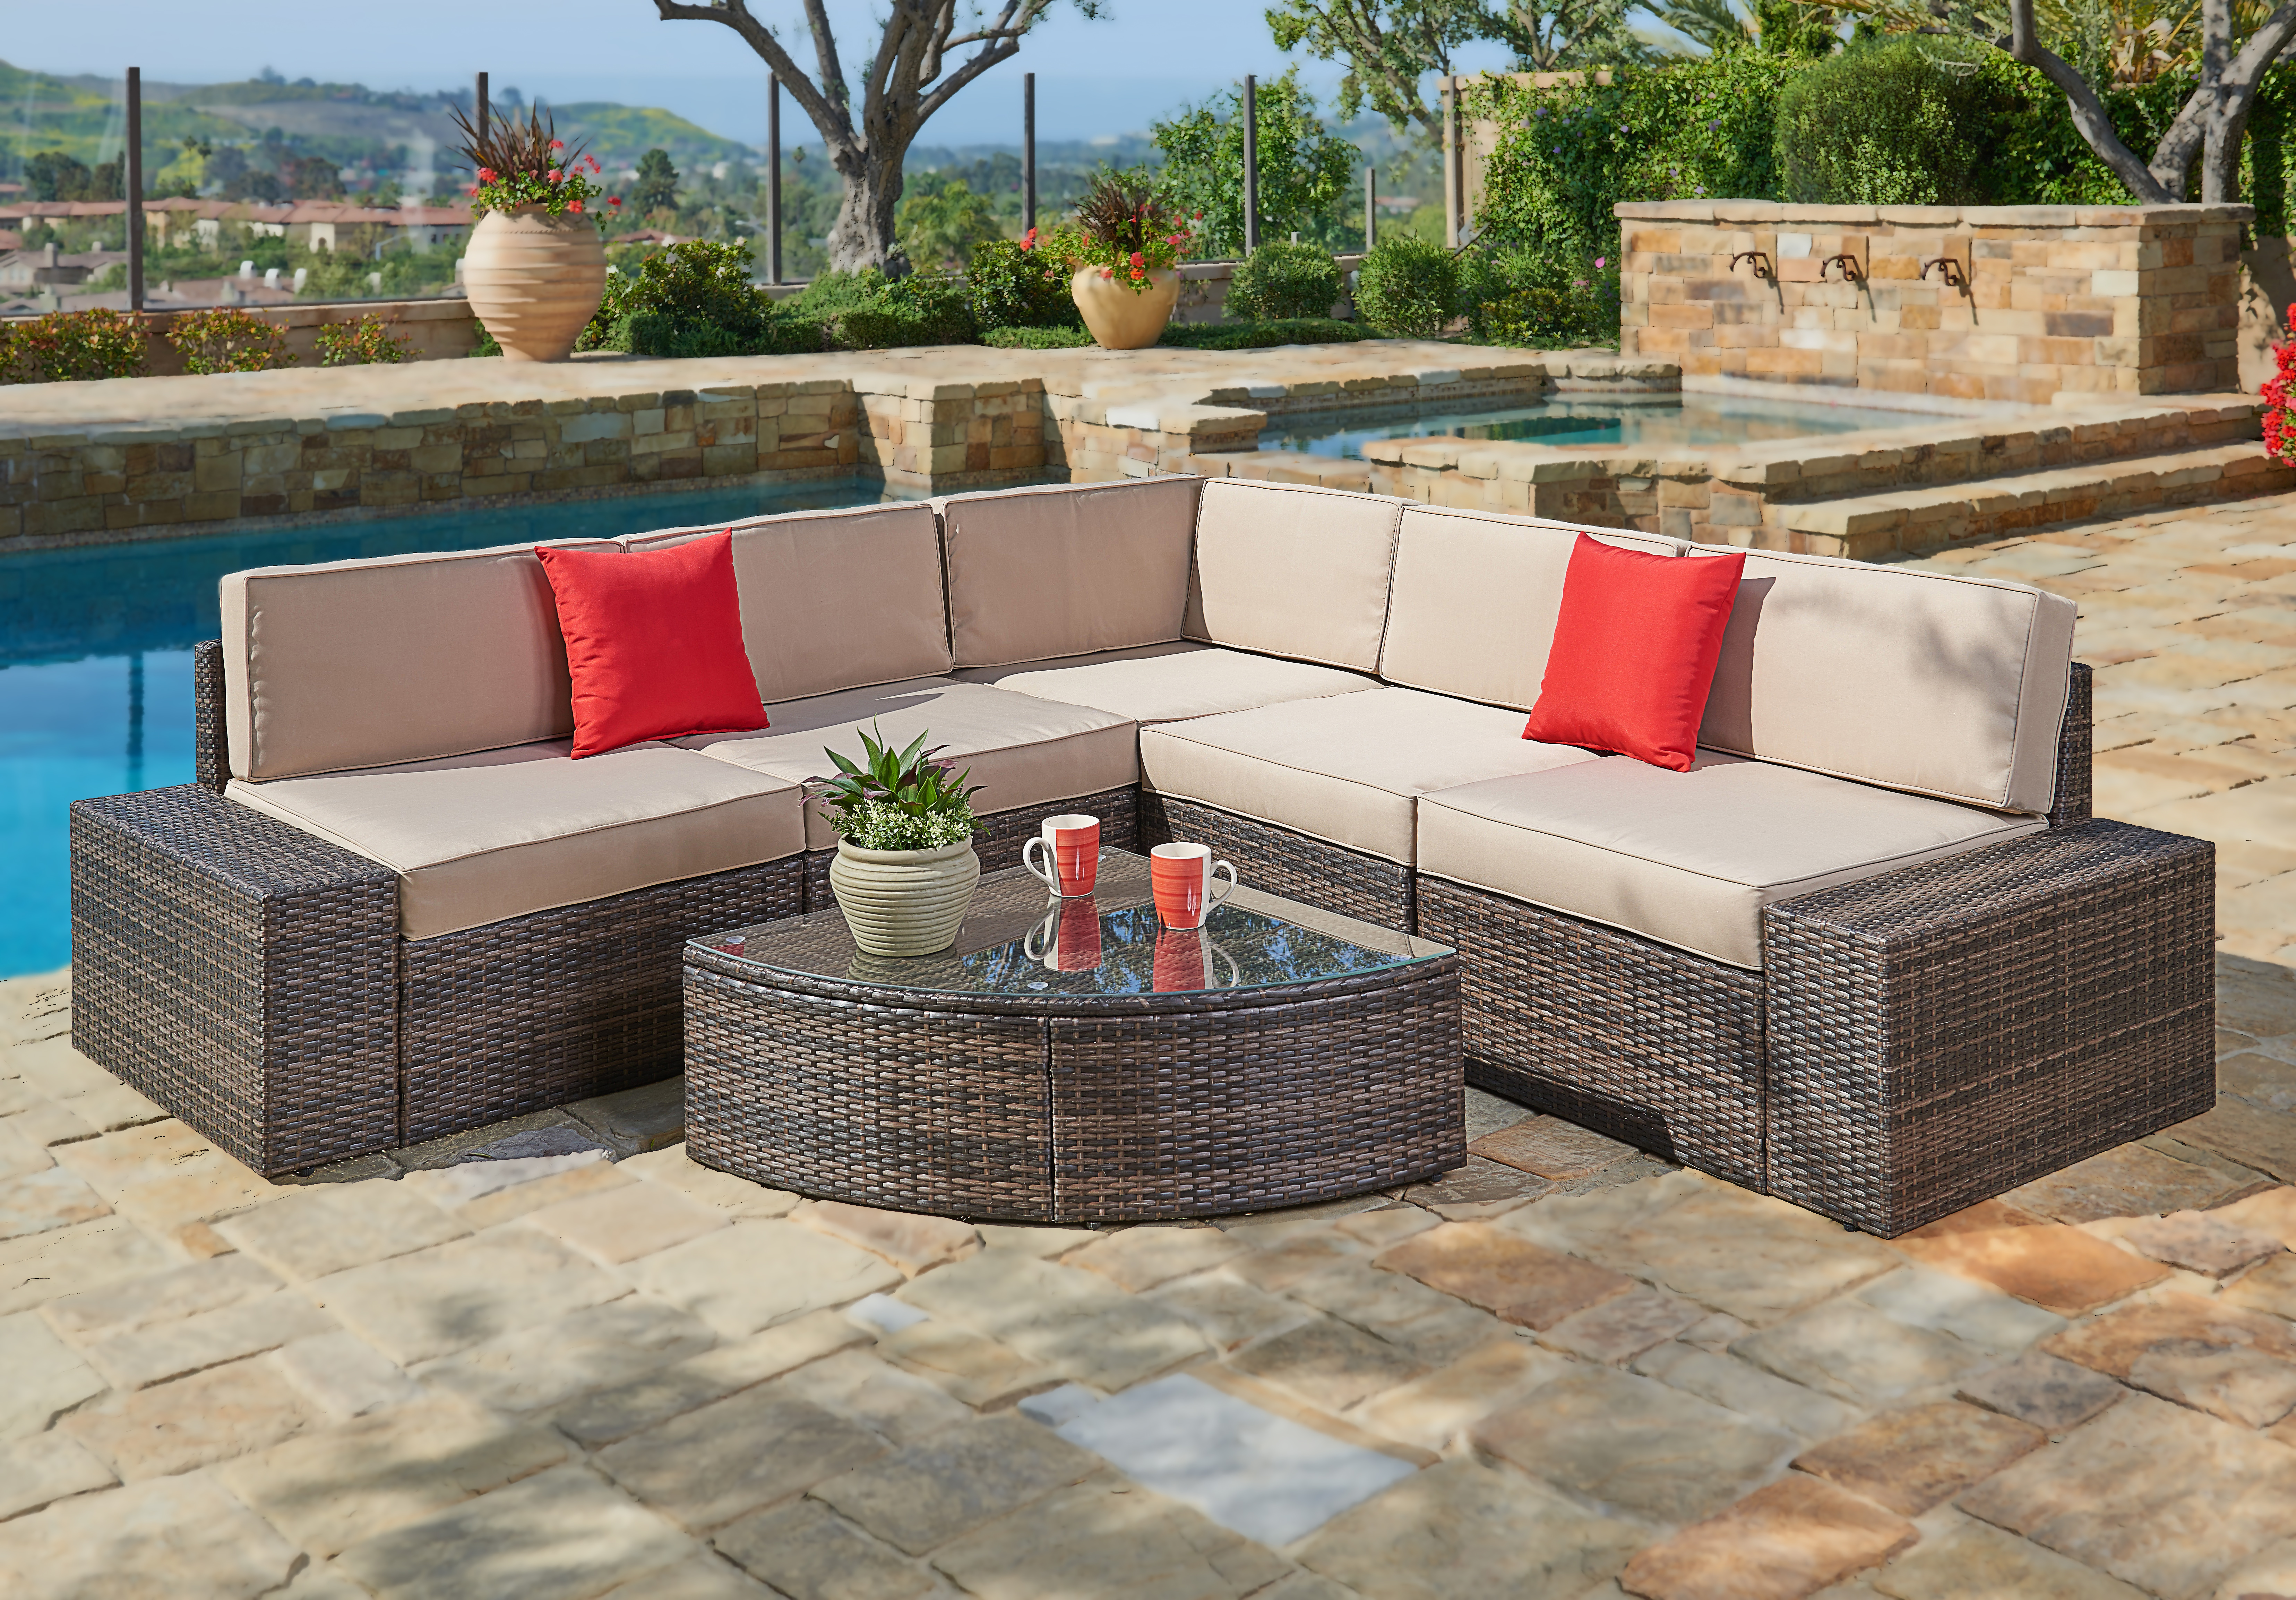 Suncrown Outdoor Furniture Sectional Sofa & Wedge Table (6-Piece Set) All-Weather Brown... by Suncrown